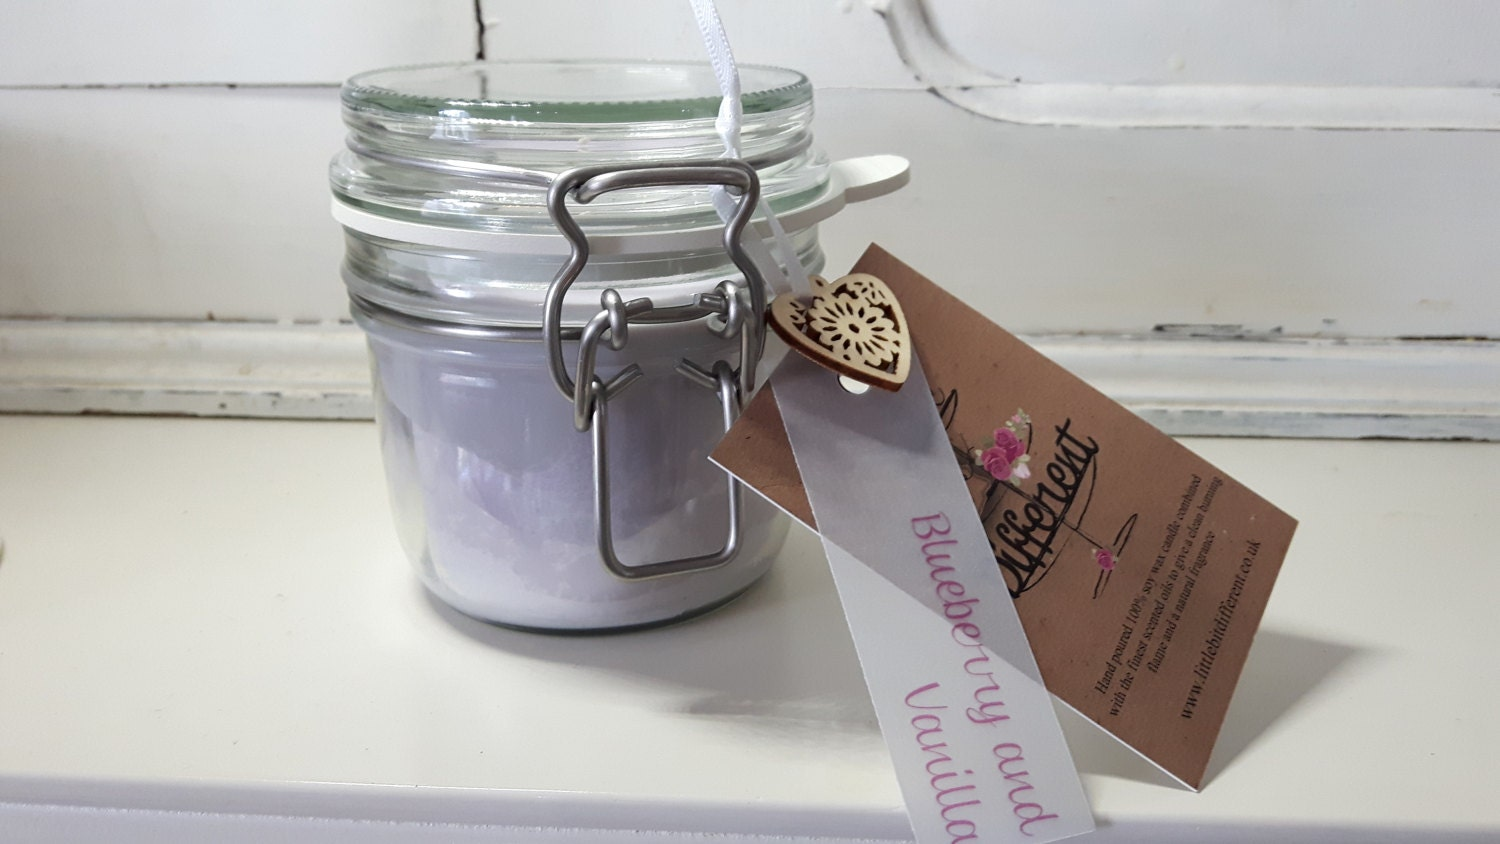 Blueberry and vanilla scented hand poured beautiful eco friendly vegan soy wax candles in reusable Kilner style jars.